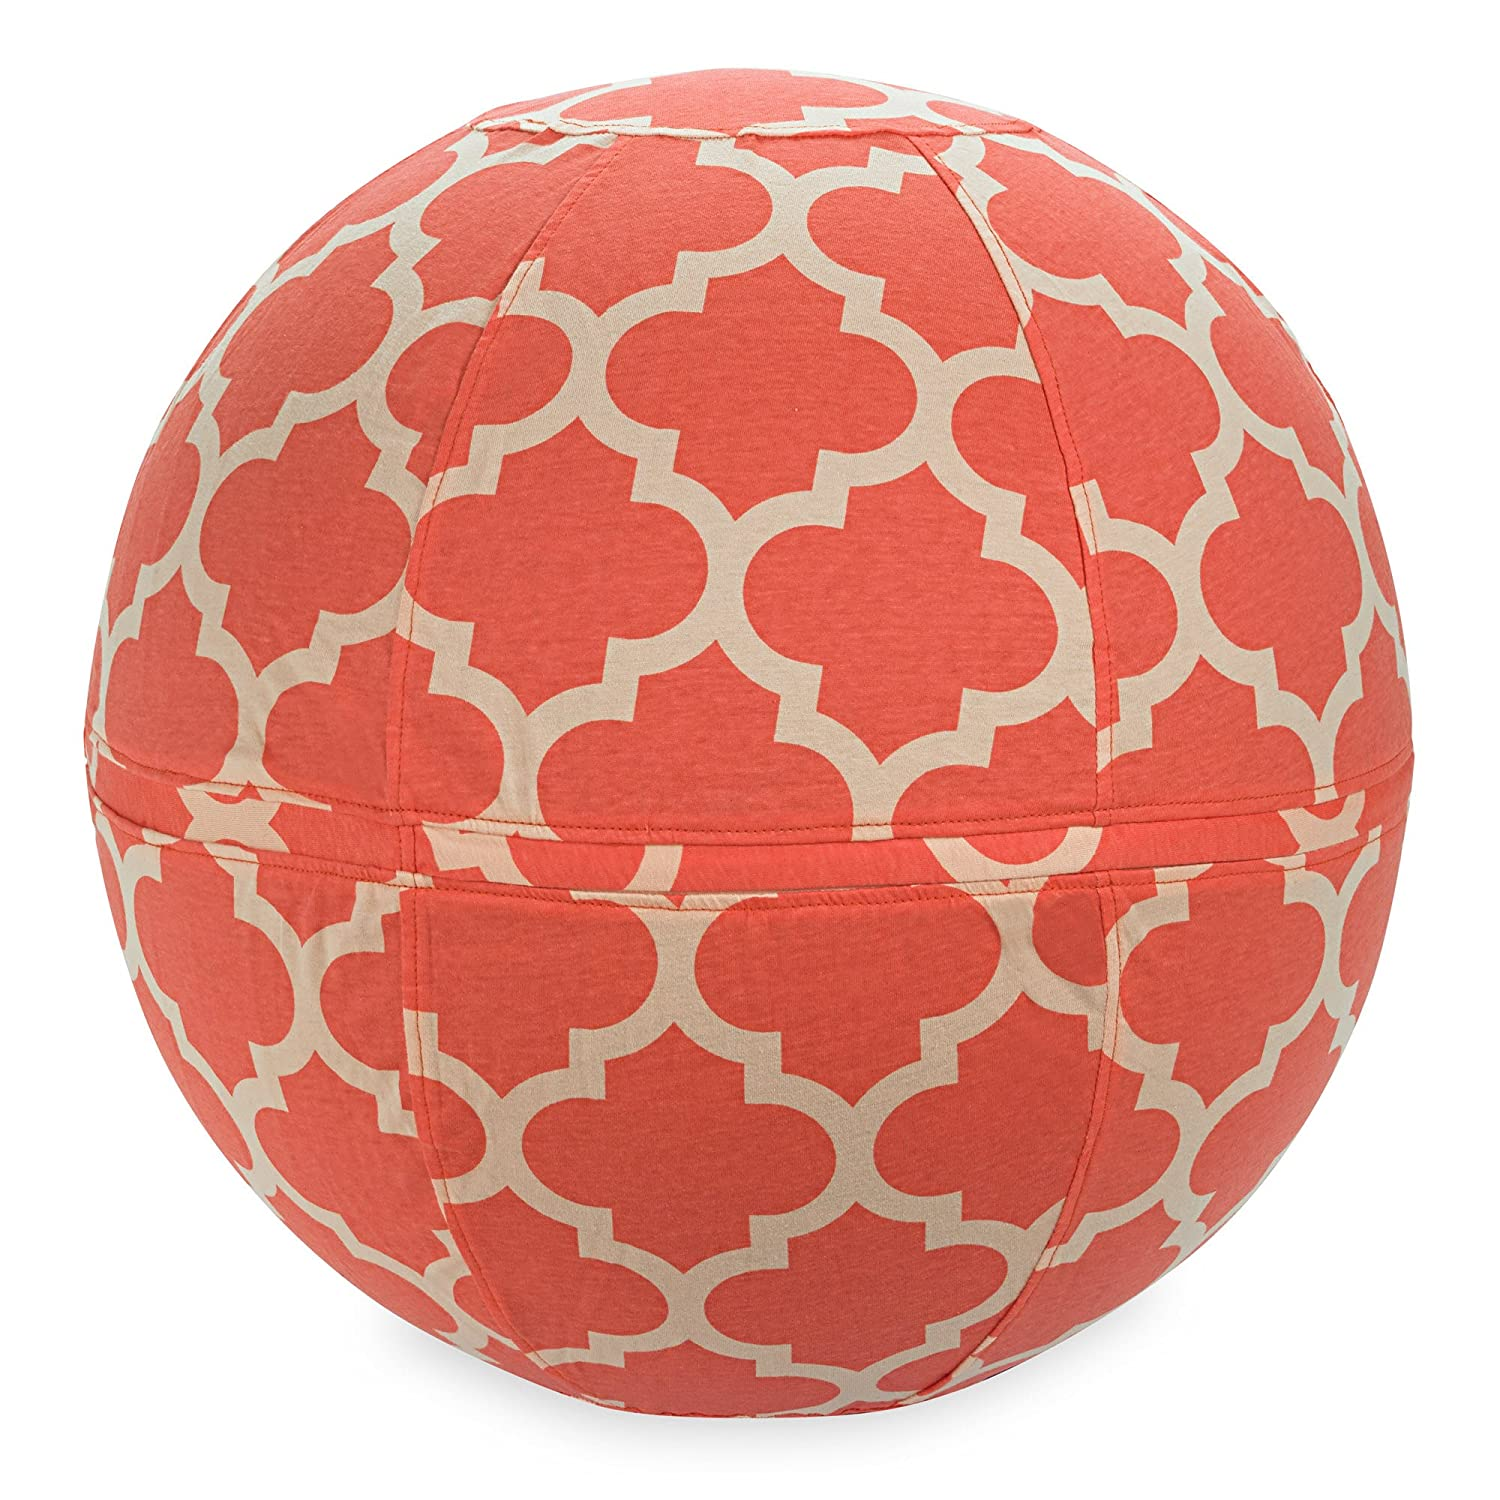 Gaiam Balance-Stuhlhussen Balance Ball Slate Fit For Life 05-62337